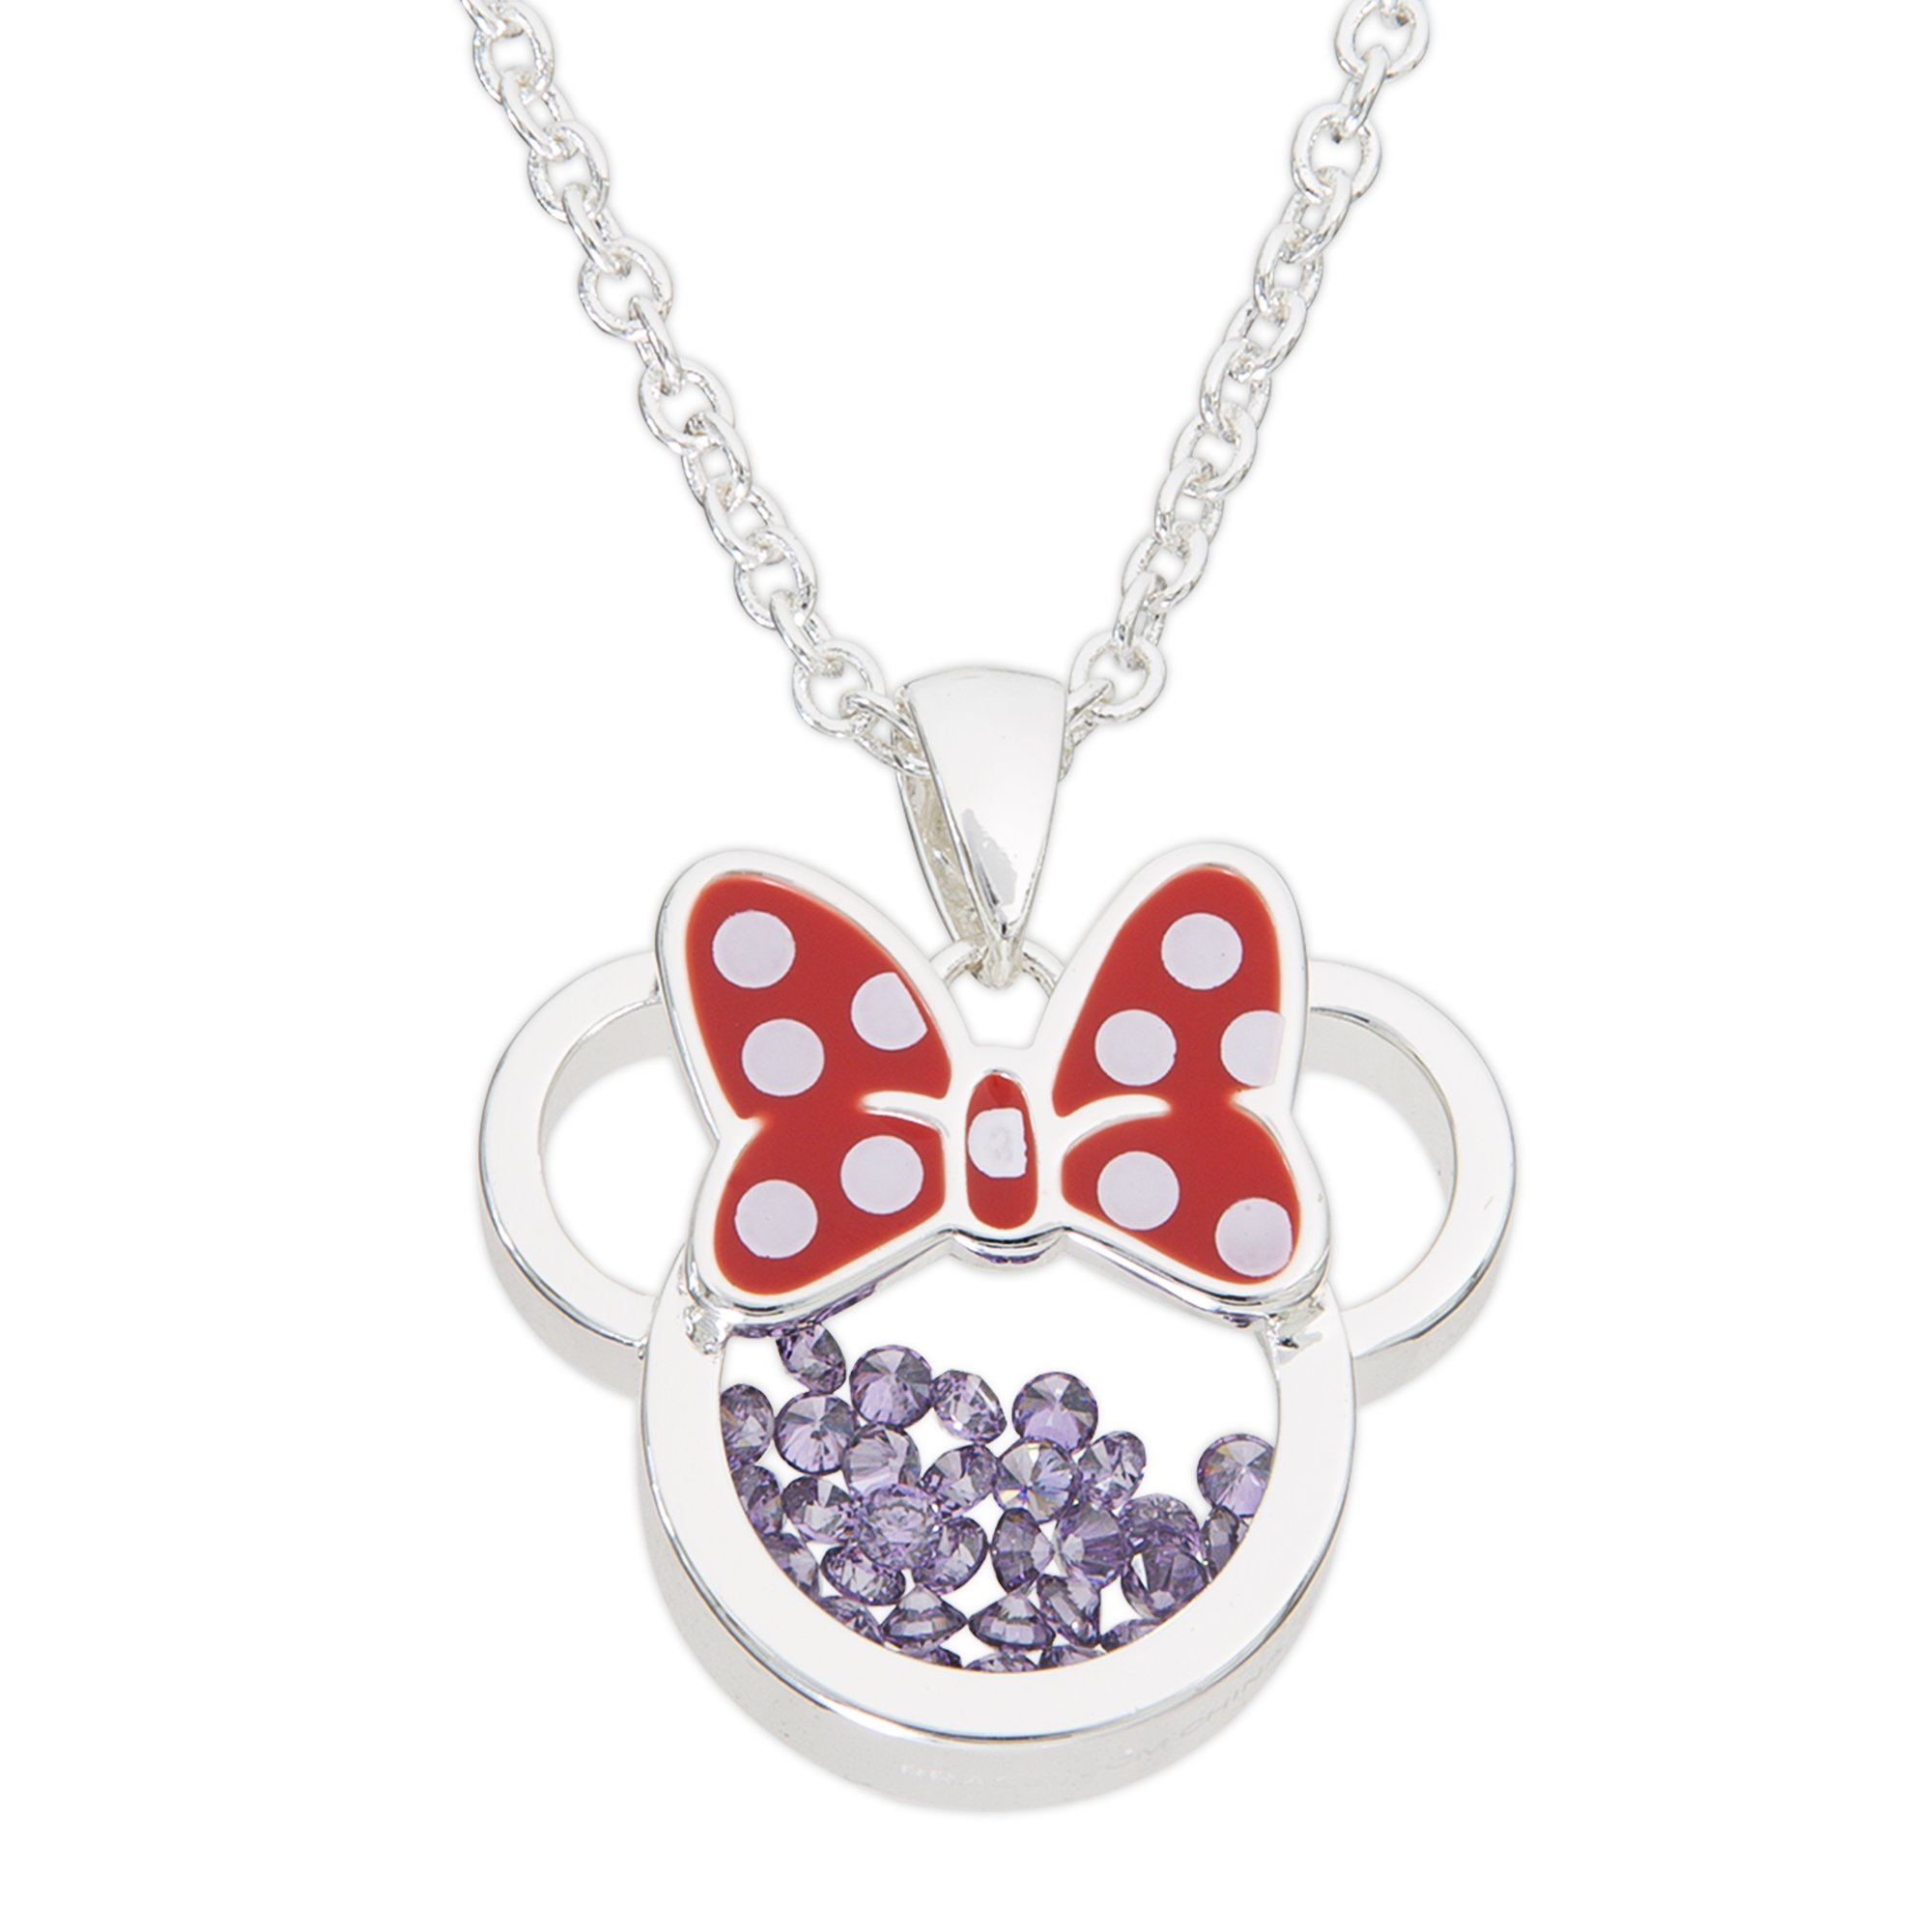 Disney Birthstone Women and Girls Jewelry Minnie Mouse Silver Plated February Amethyst Purple Cubic Zirconia Shaker Pendant Necklace, 18+2'' Extender